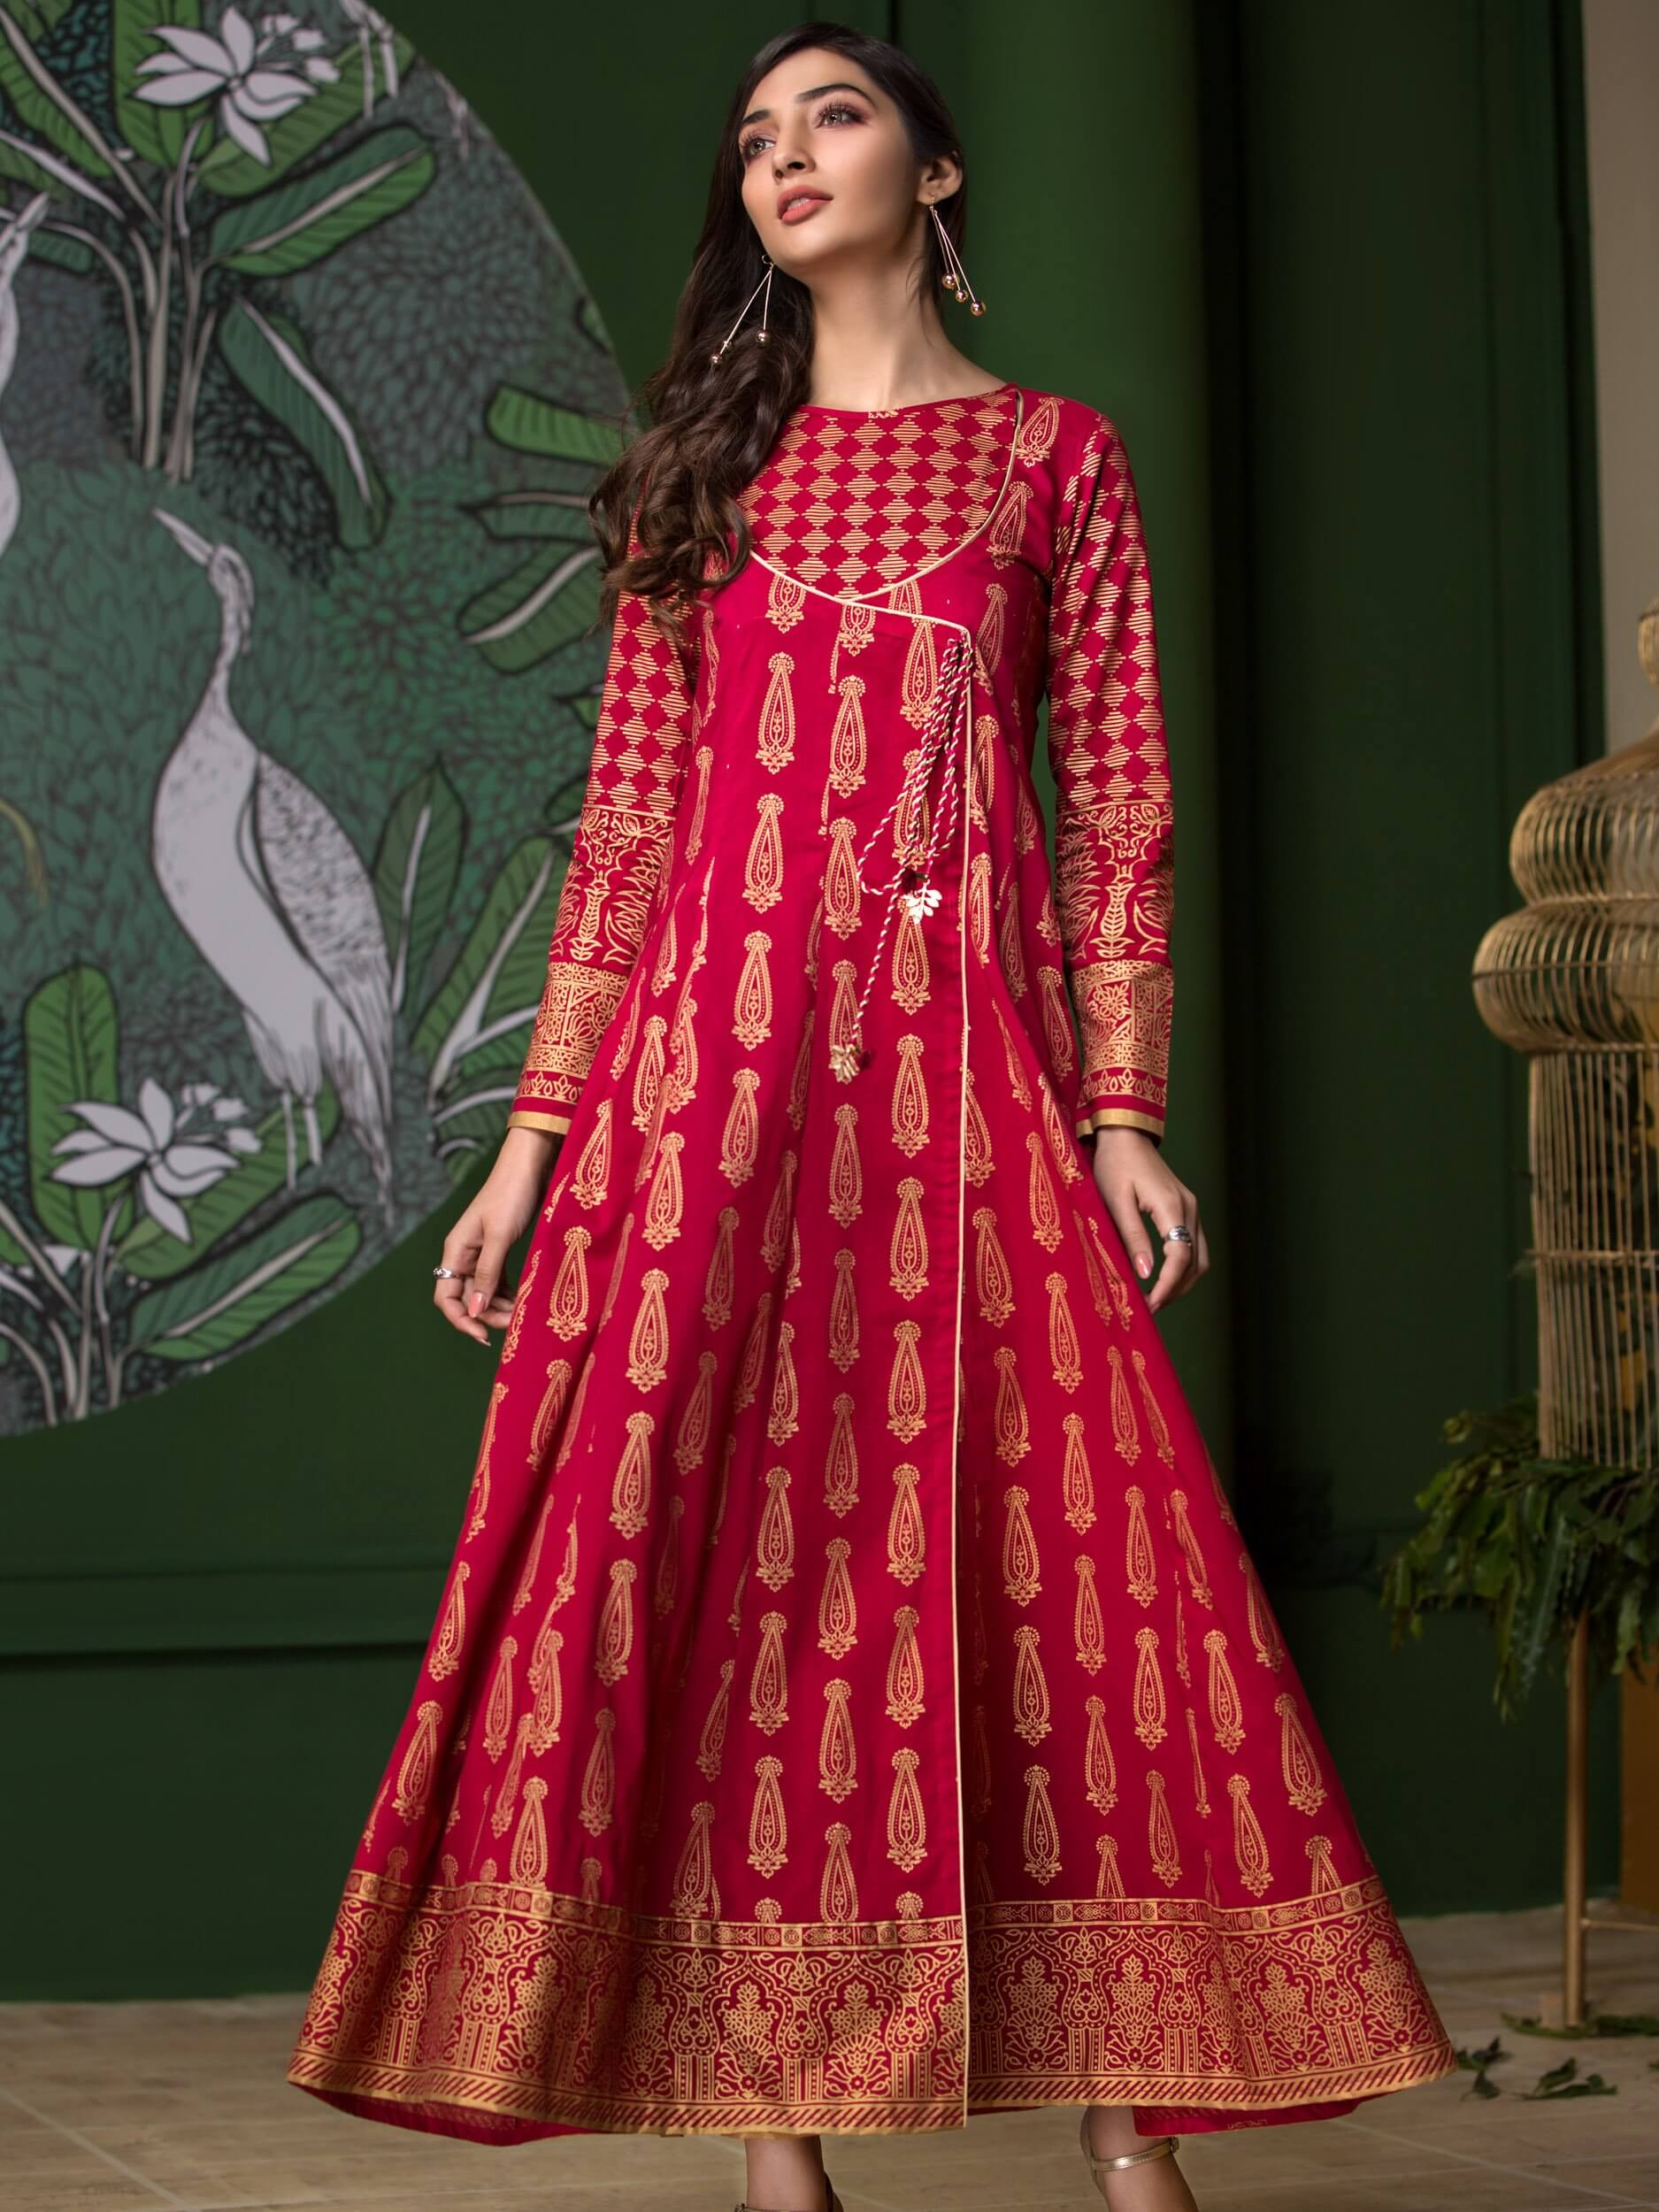 LimeLight Lawn 1PC Unstitched Shirt Summer Collection 2019 U0707 Red - FaisalFabrics.pk